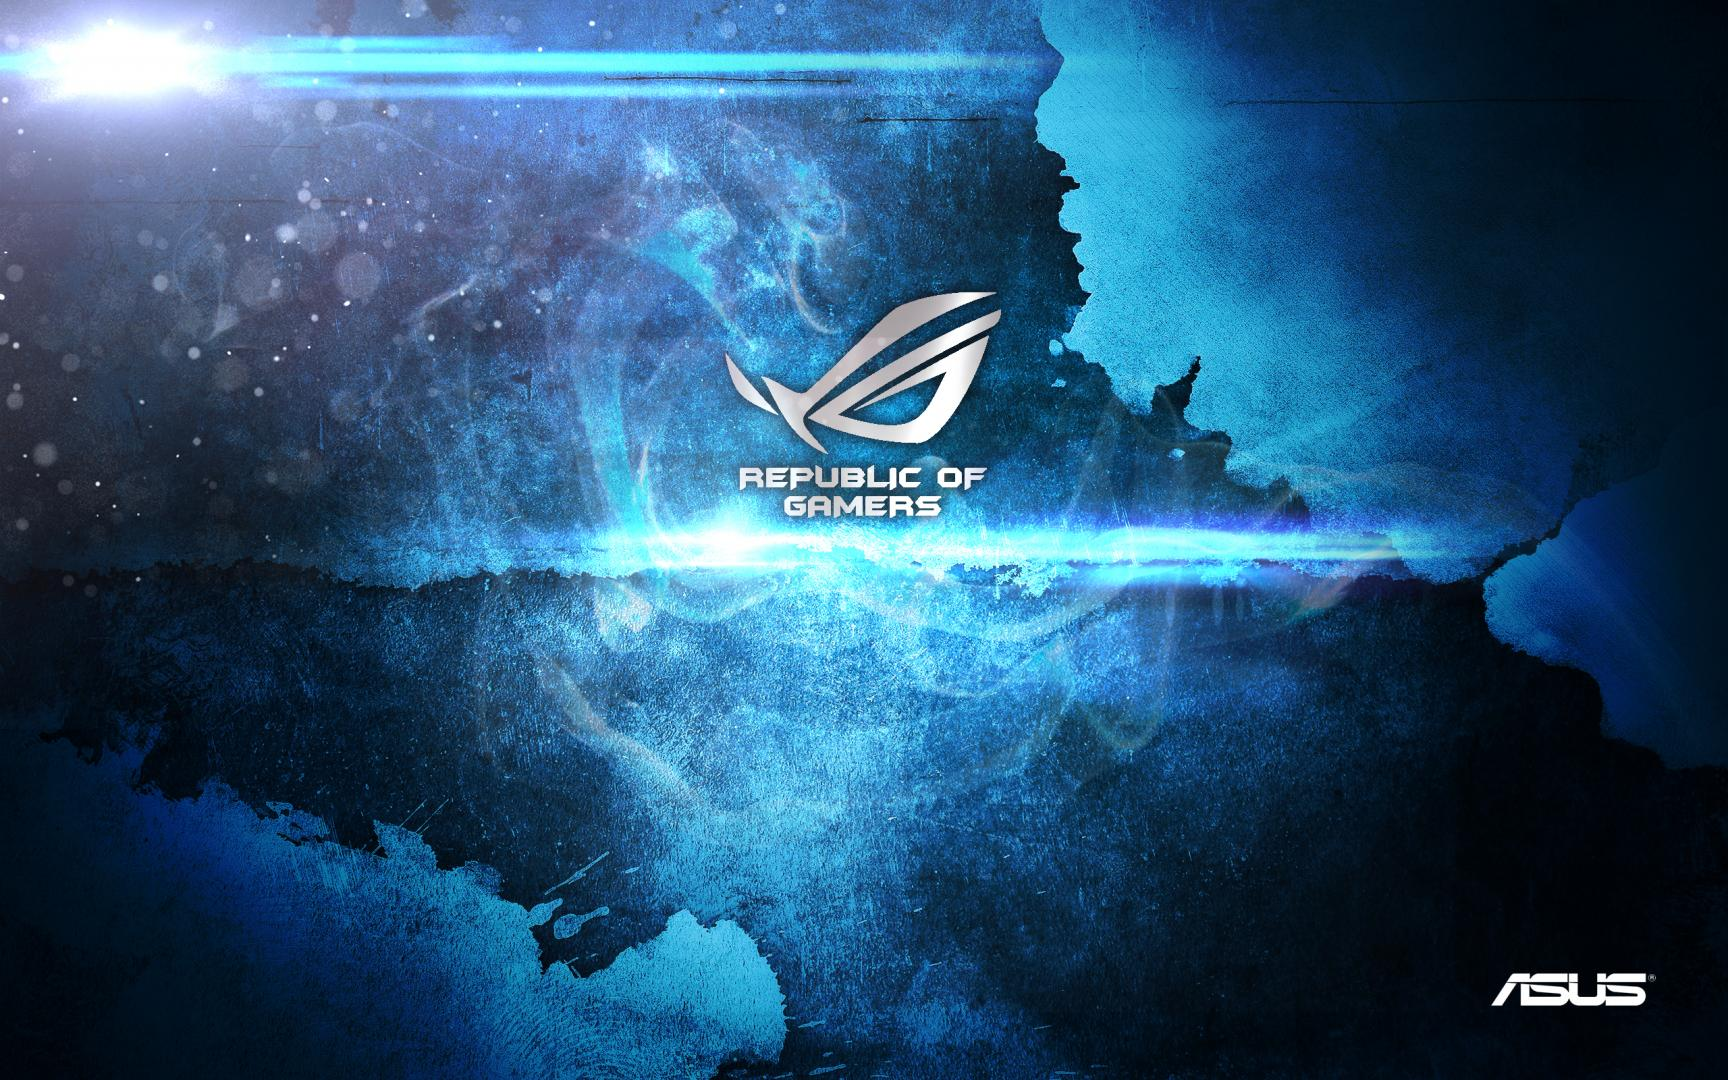 Asus Blue Wallpaper: 2013 ROG Wallpaper Competition: Vote For Your Favorite